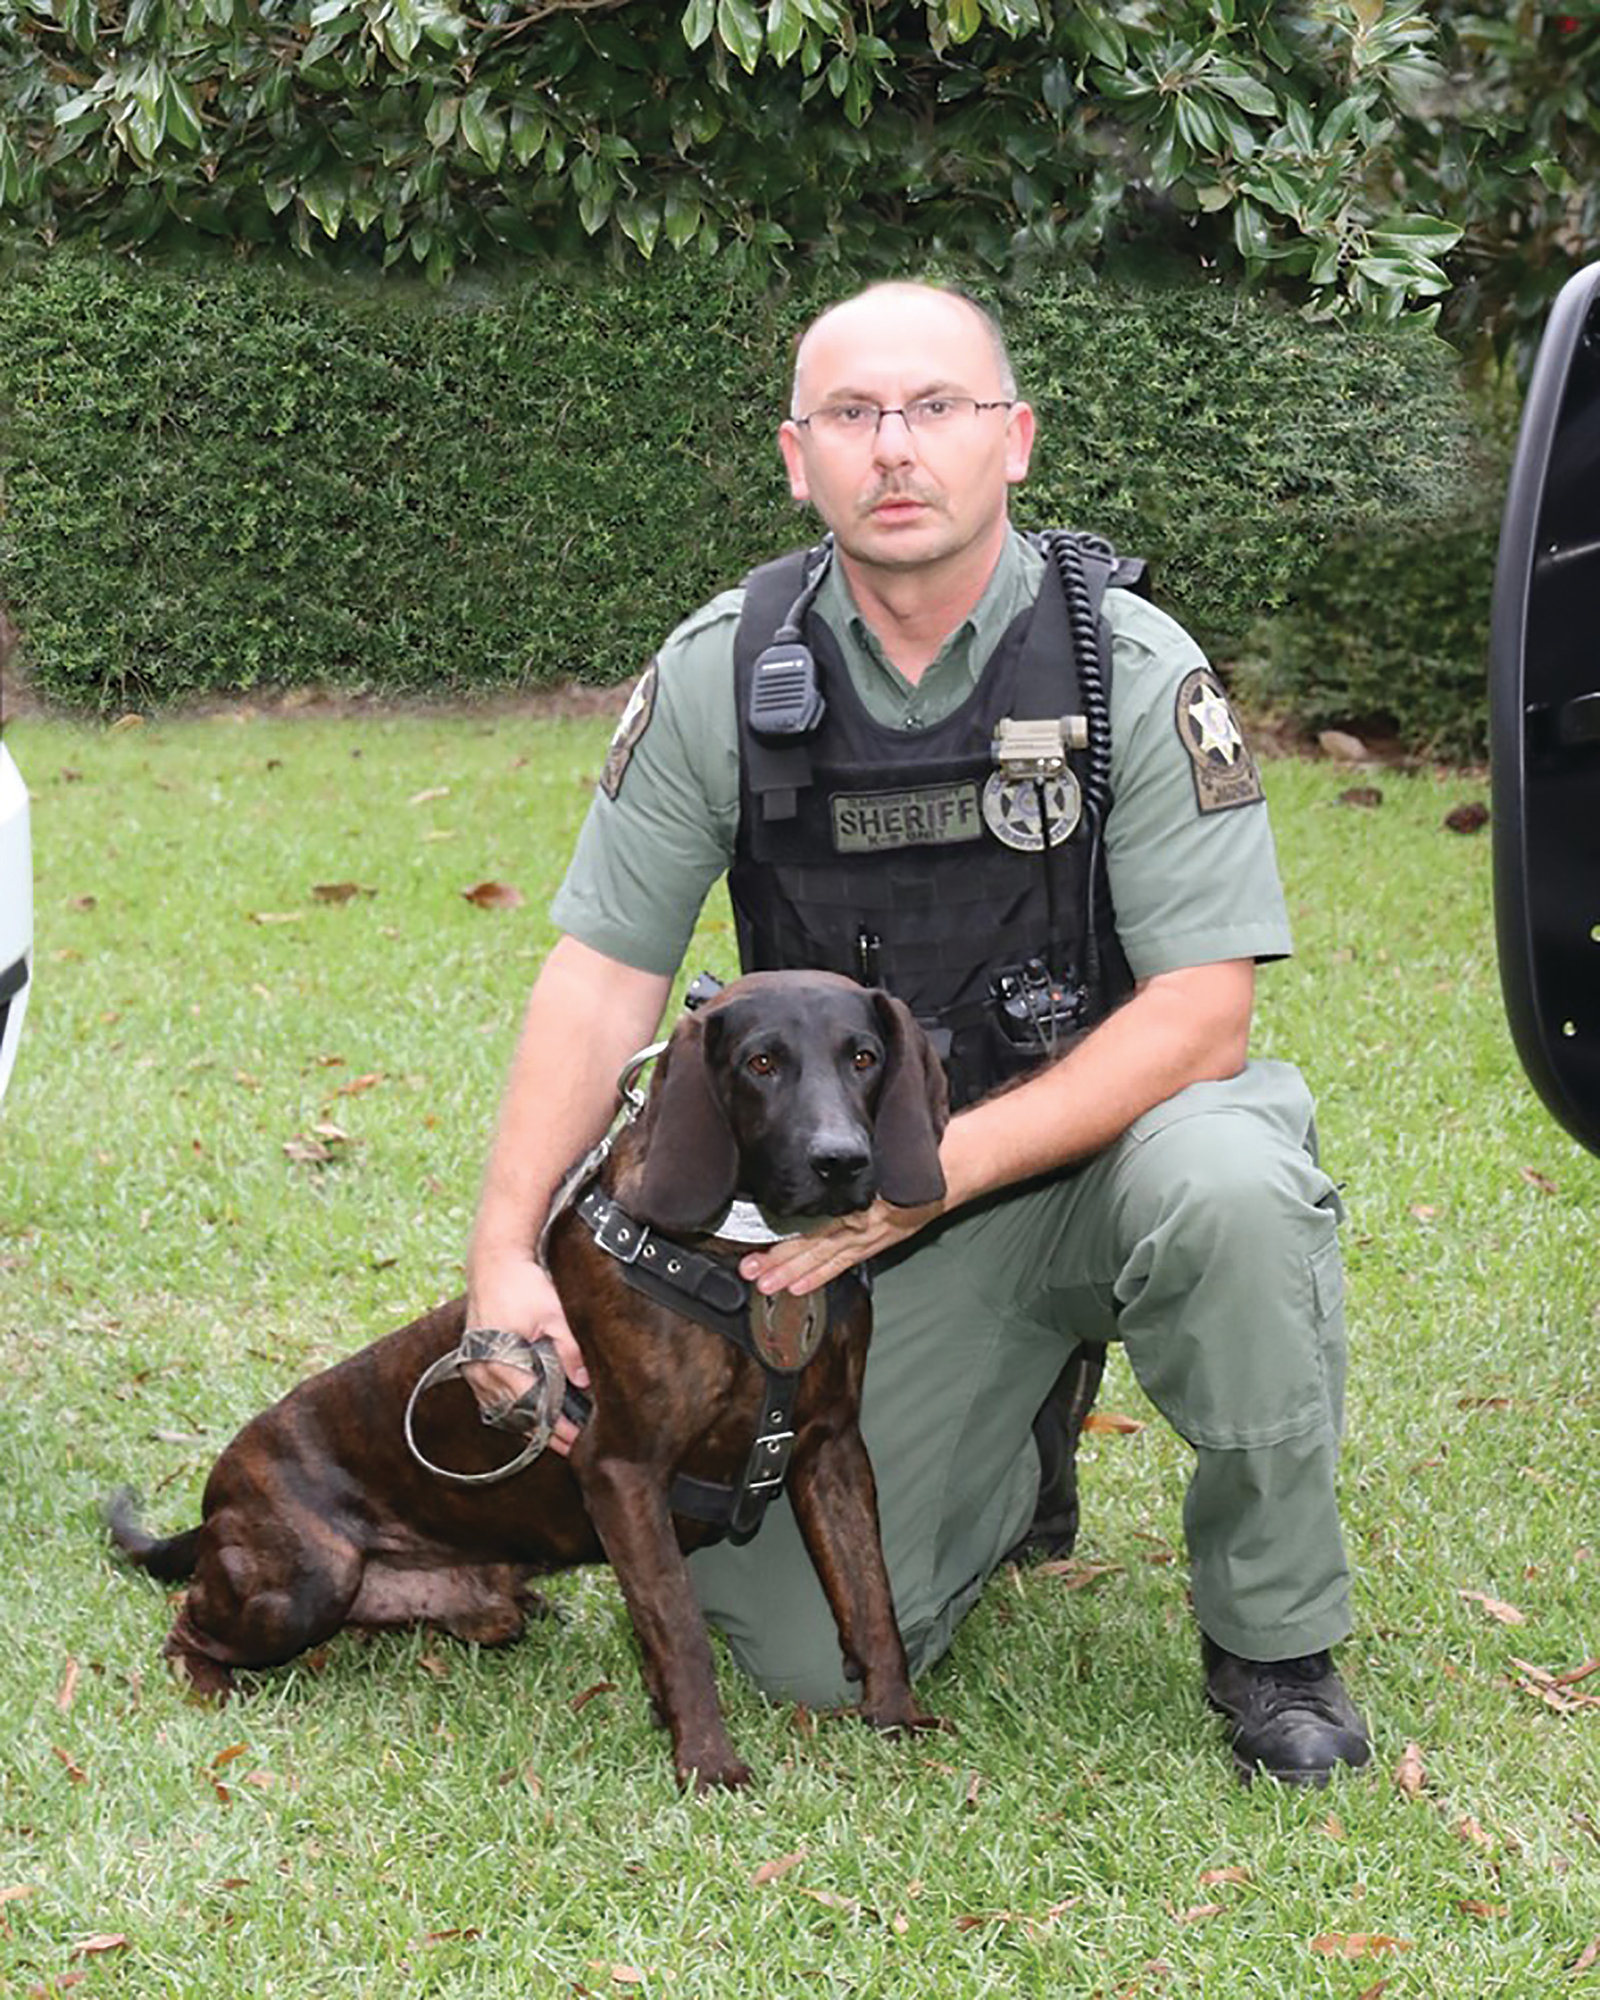 Clarendon County K-9 Handler Ernie Grice works with K-9 Holmes, who is named in memory of the late Clarendon County Sheriff's Office Inv. Holmes N. Smith Jr., who died in the line of duty in 2014.